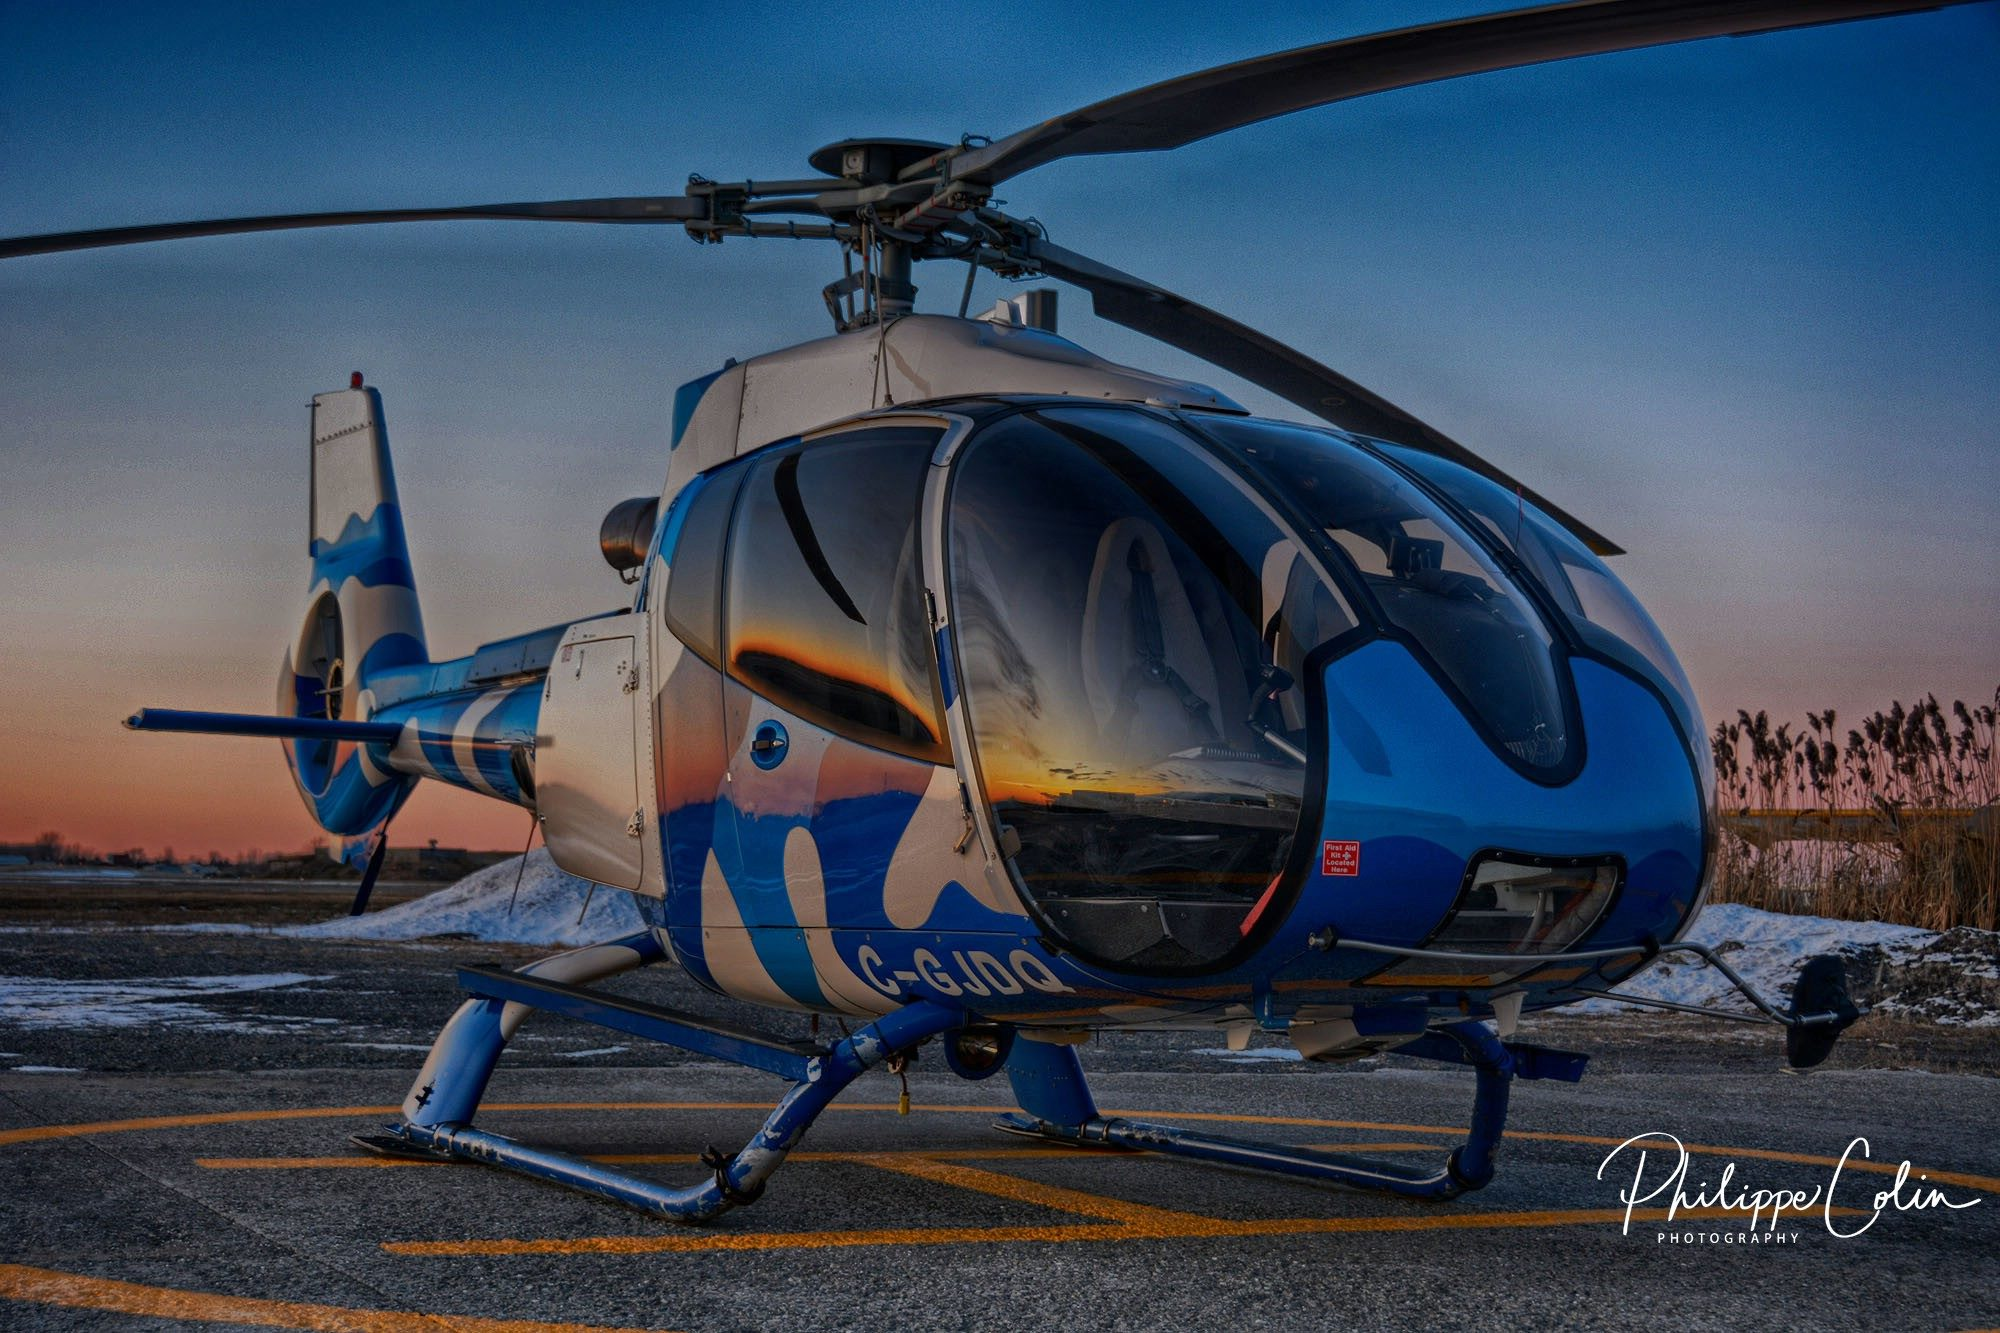 A colorful Airbus EC130 operated by Wendake Helicoptere Inc. Photo submitted by Philippe Colin